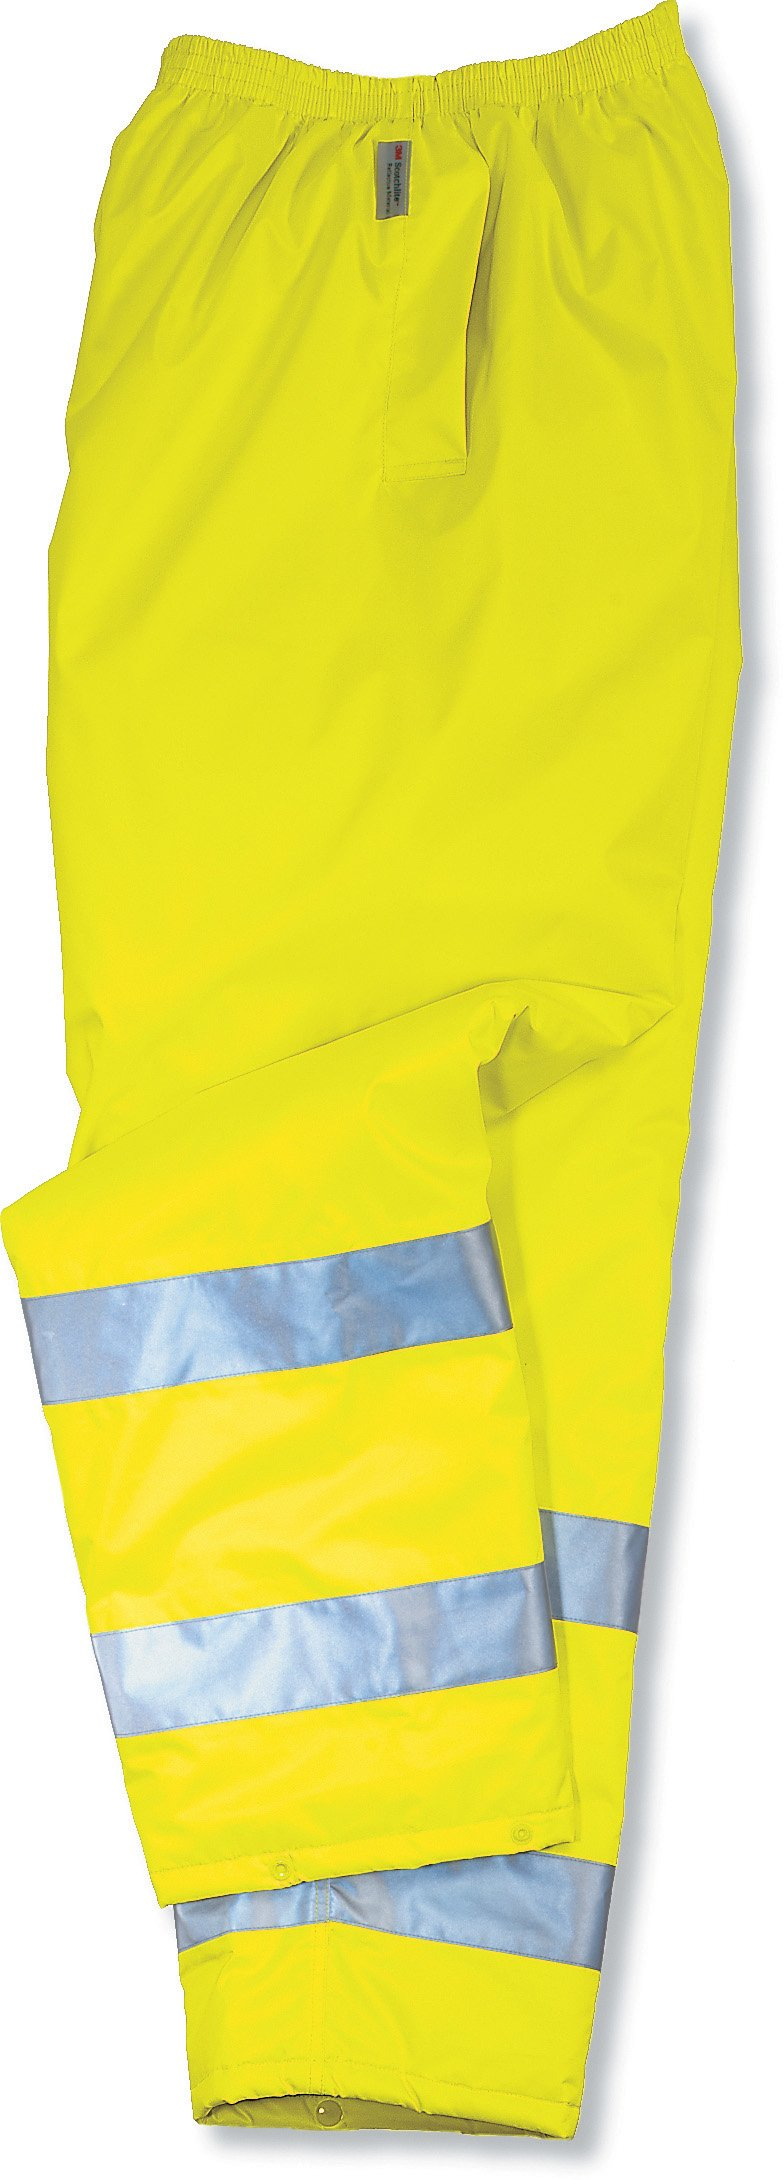 Ergodyne GloWear 8915 ANSI High Visibility Lime Reflective Safety Rain Pants, Small